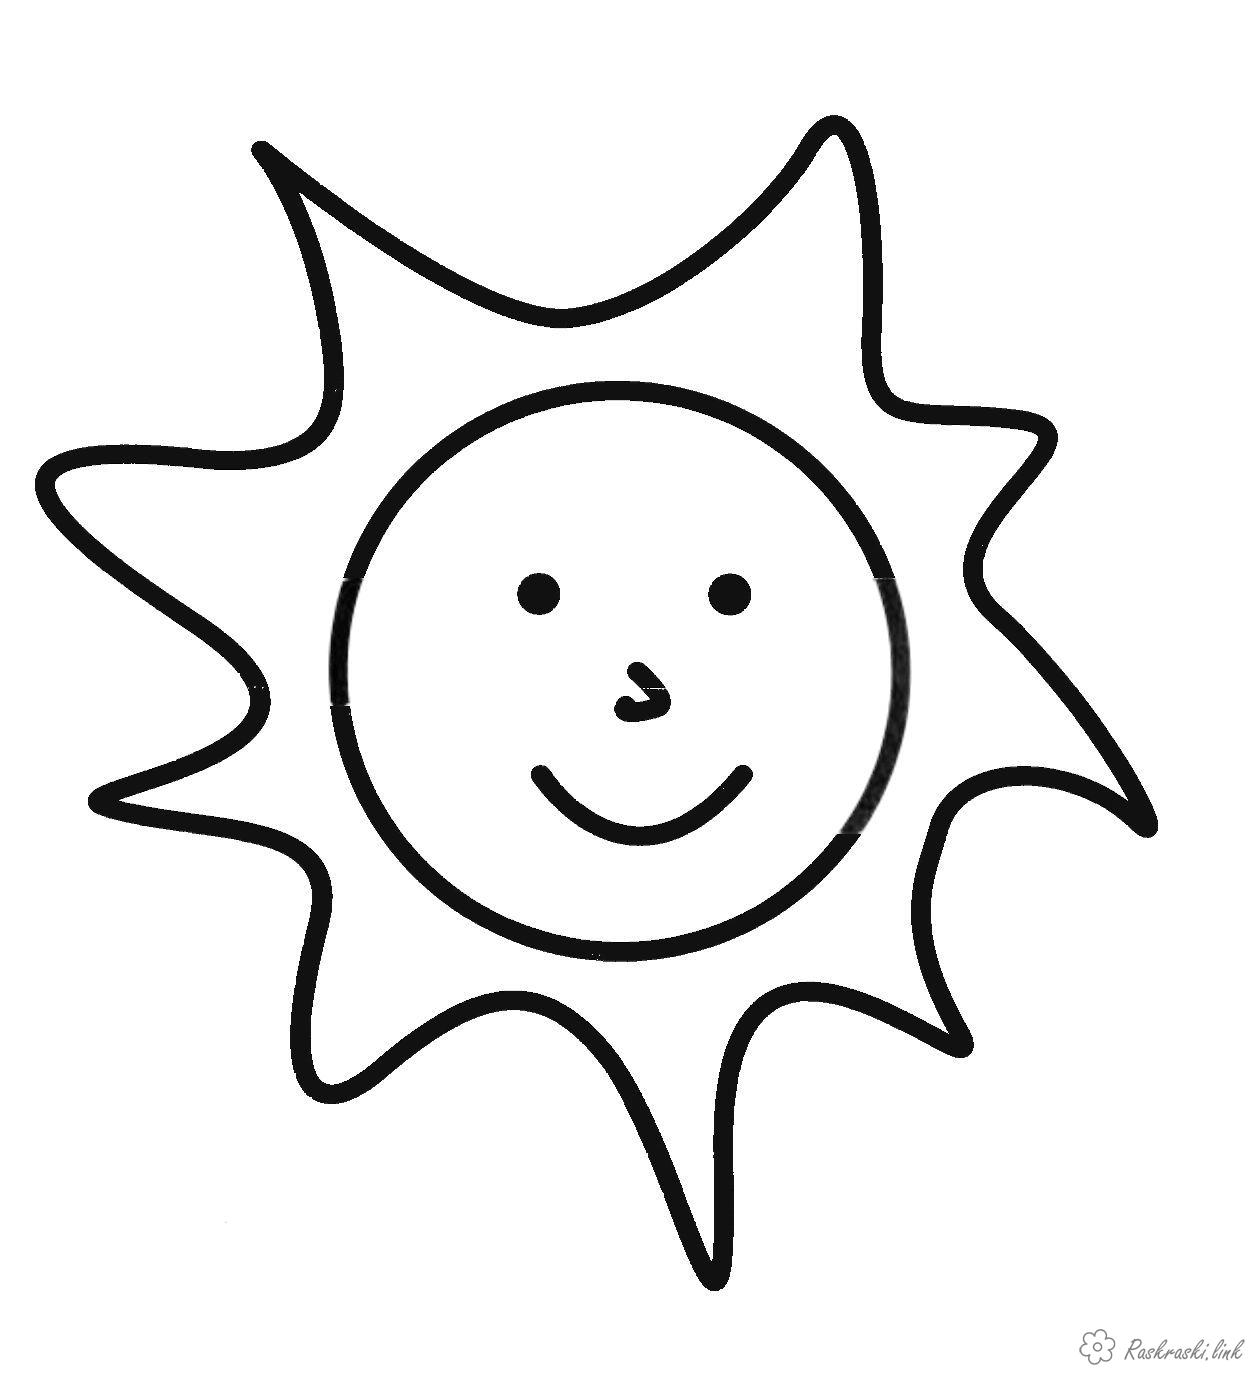 Coloring Simple coloring pages for kids Fun sun coloring pages